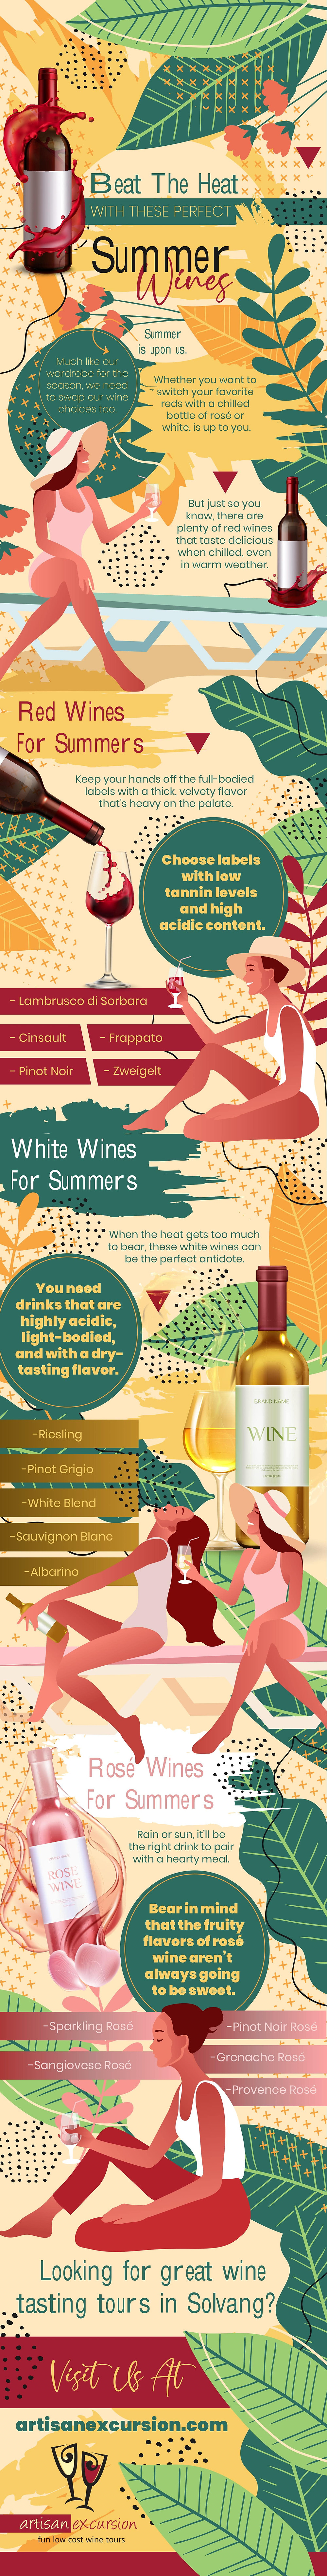 beat the heat with summer wines